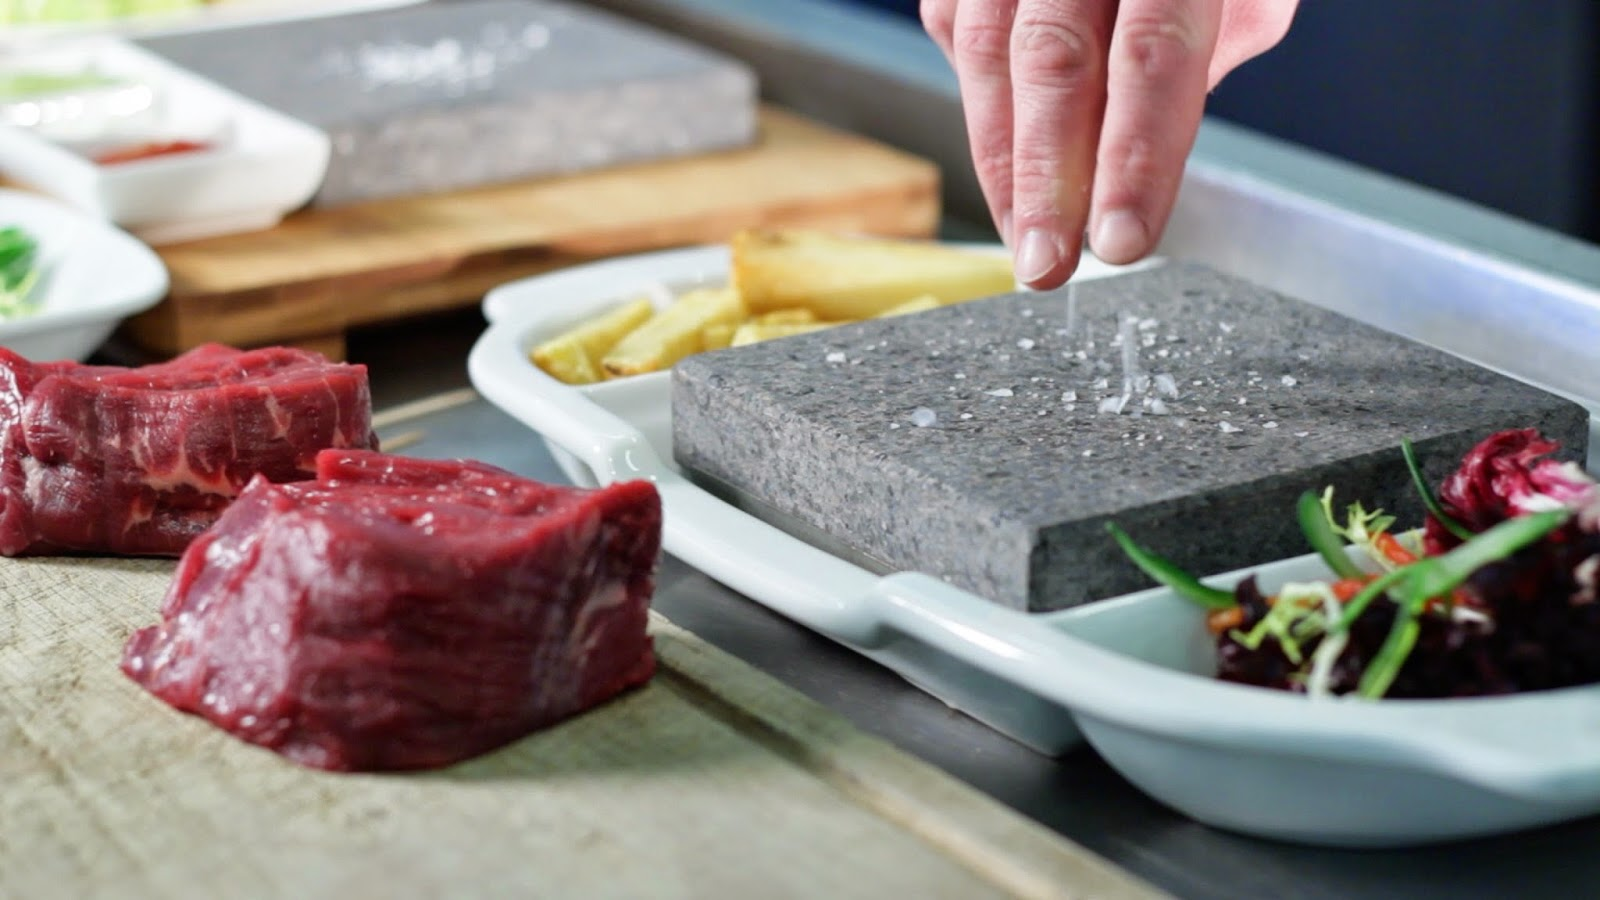 Black rock grill benefits of steak stone cooking for Cooking fish on a salt block